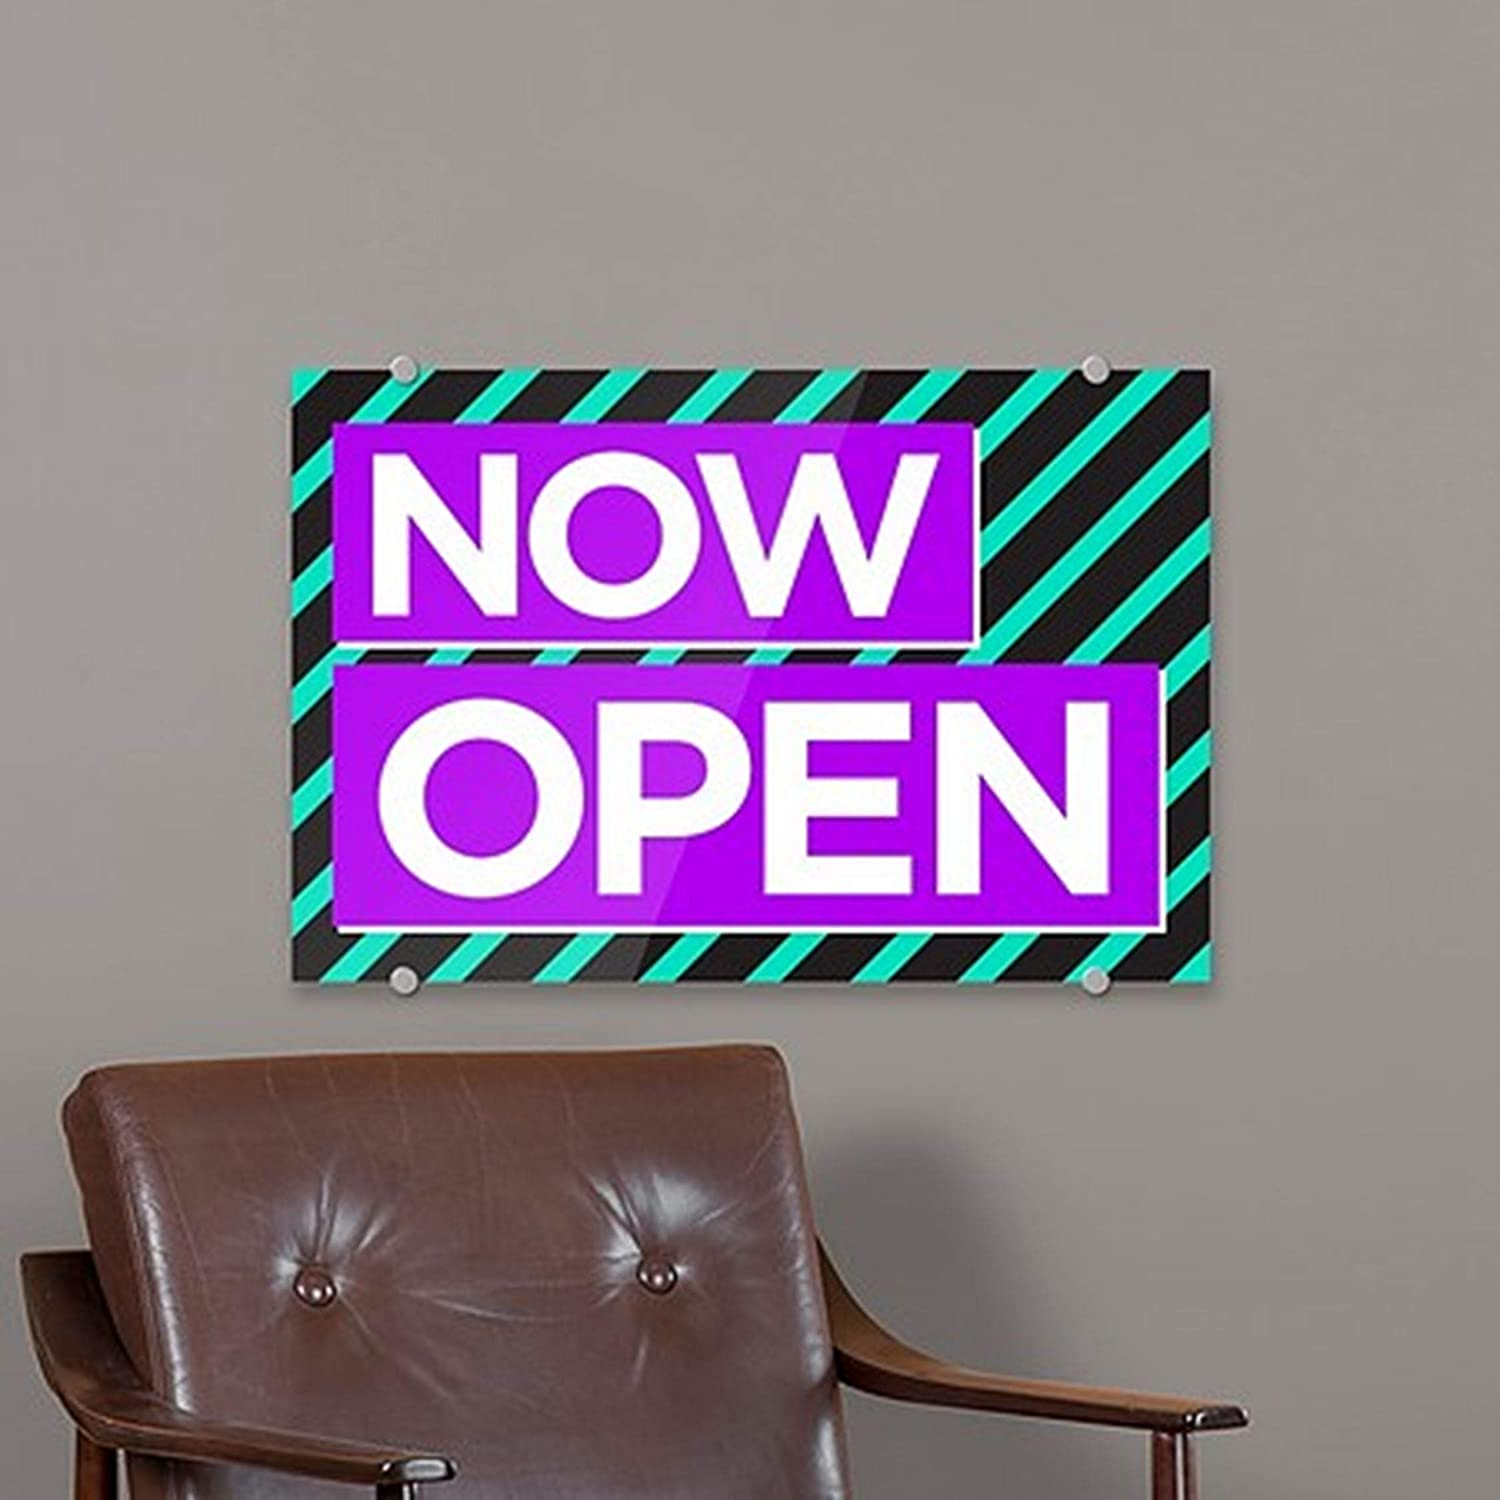 27 x 18 Modern Block 1//8 in Premium Acrylic Sign with Brushed Aluminum Edge-Grip Stand-Offs CGSignLab 2452783/_absw/_27x18/_None Now Open